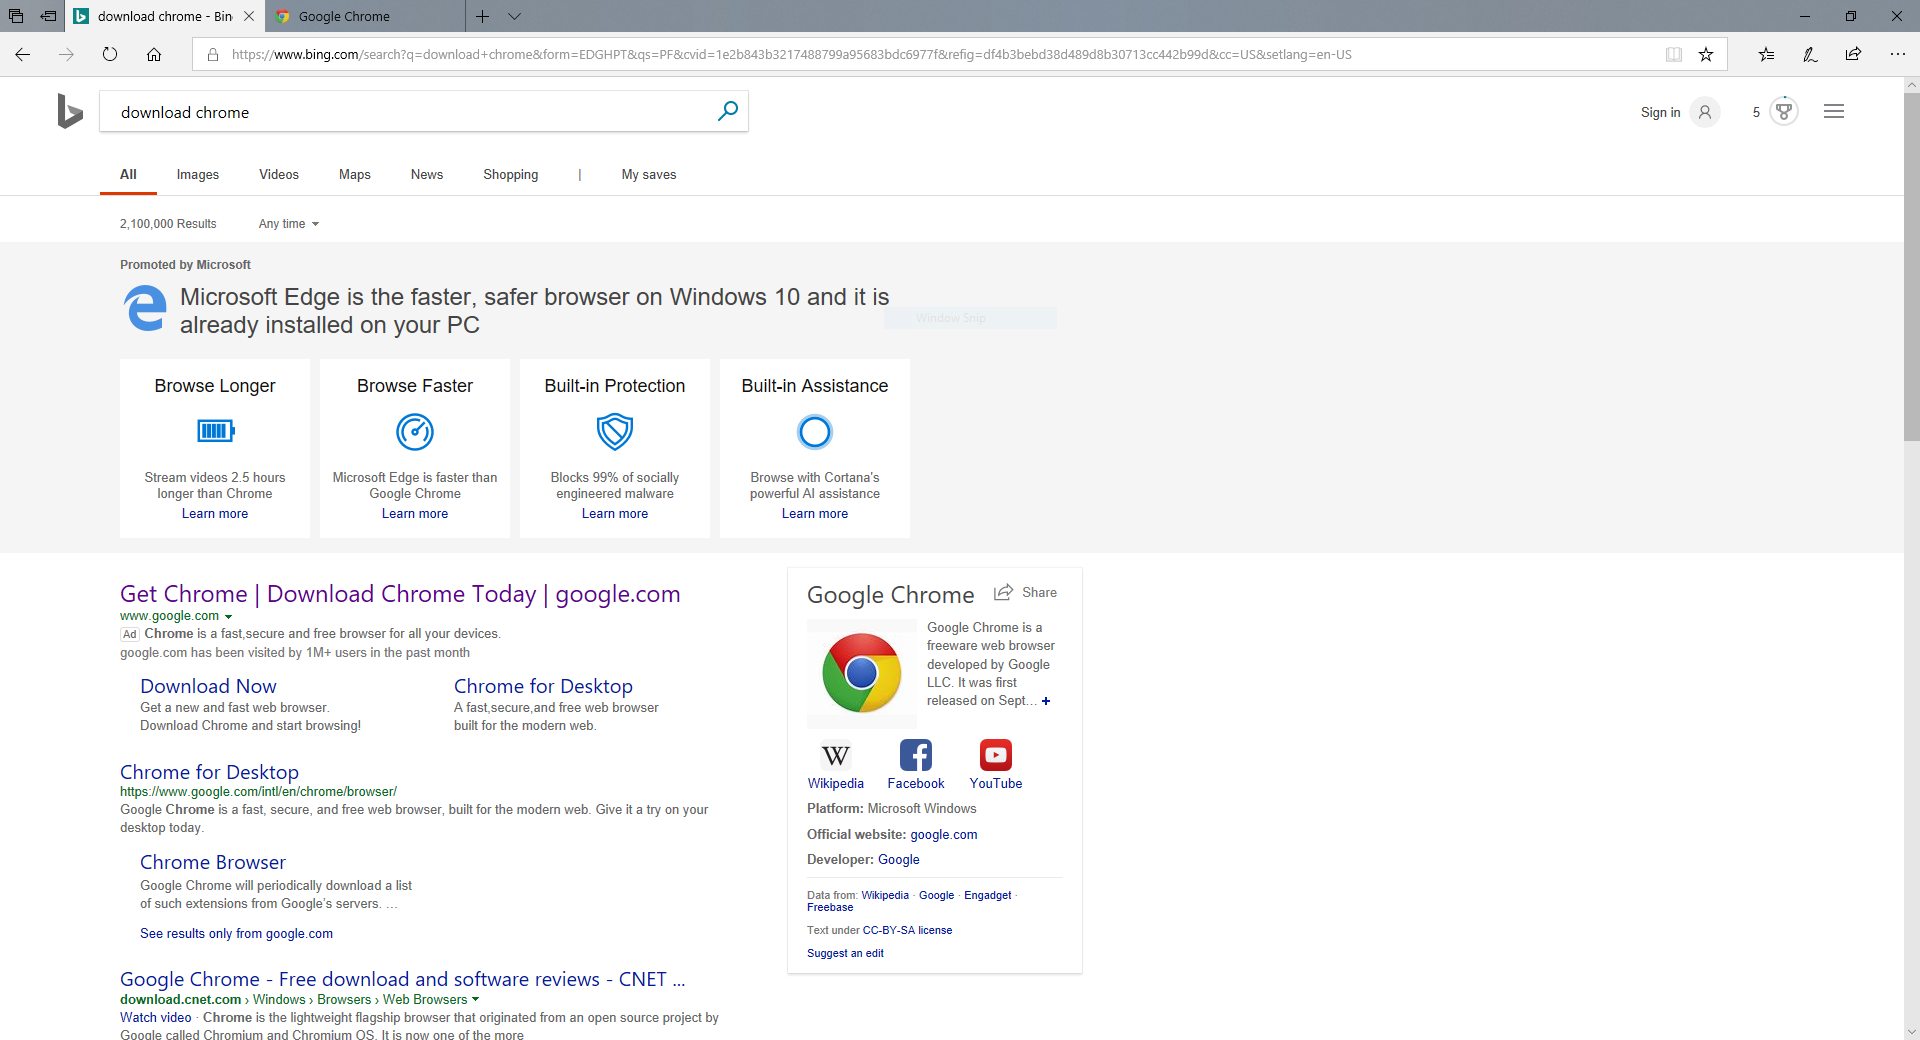 Microsoft Edge search linking to potentially bogus Chrome